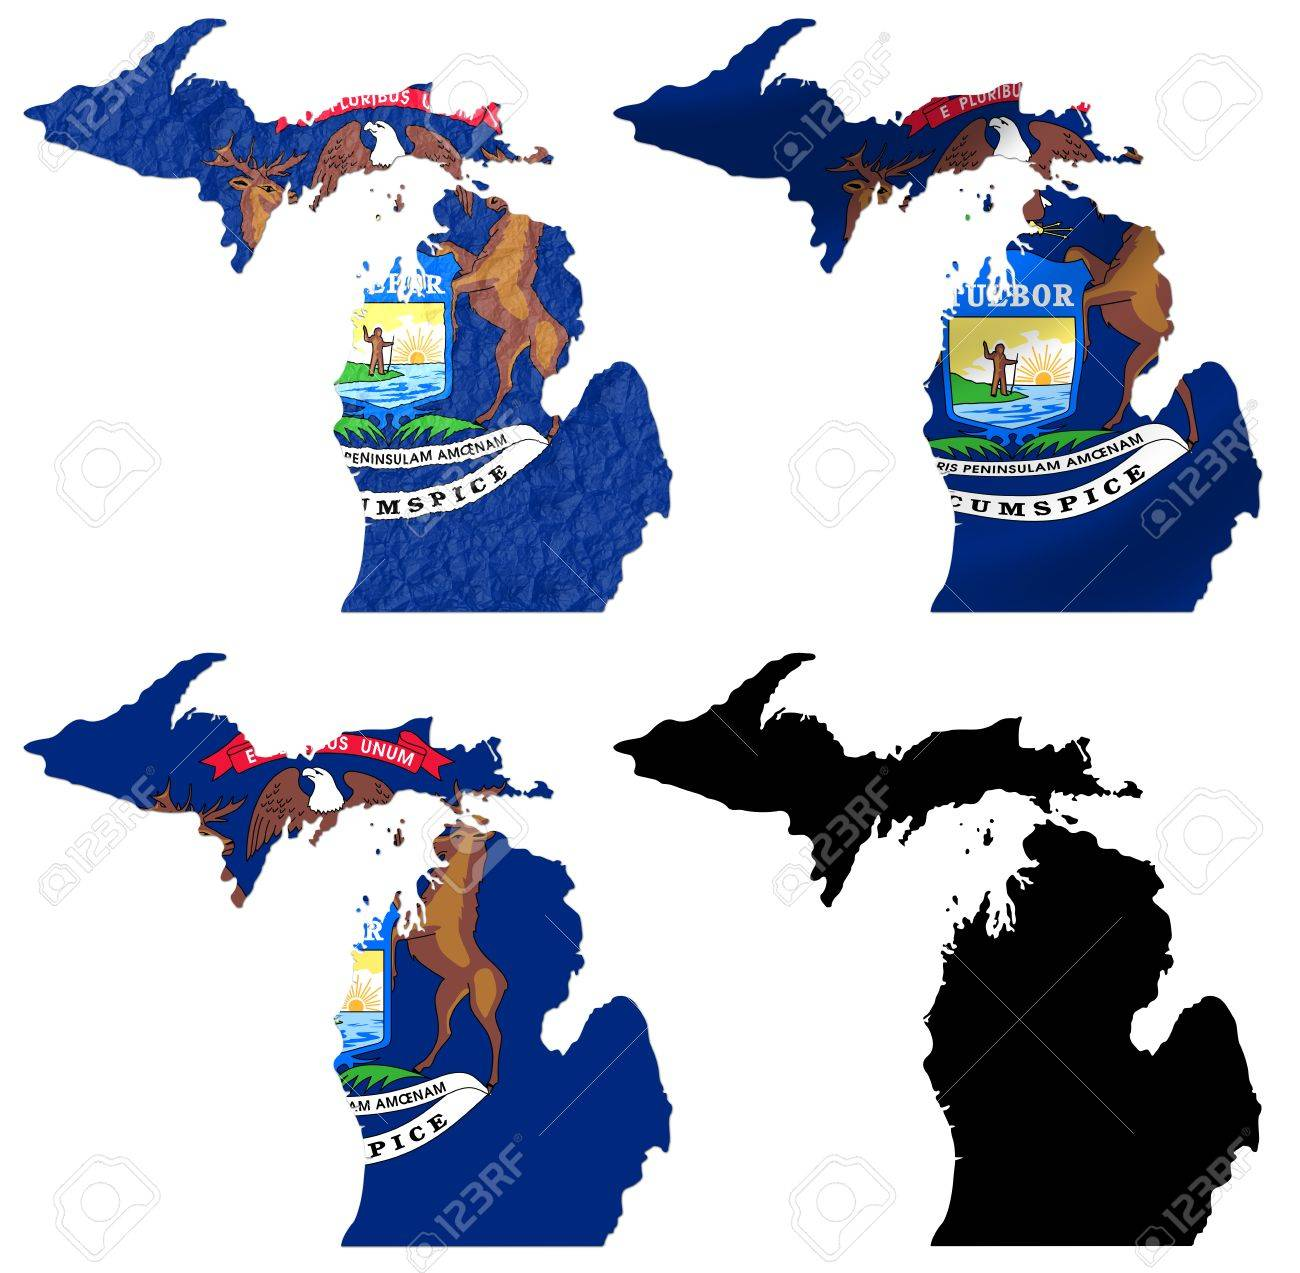 Us Map Photo Collage.Us Michigan State Flag Over Map Collage Stock Photo Picture And